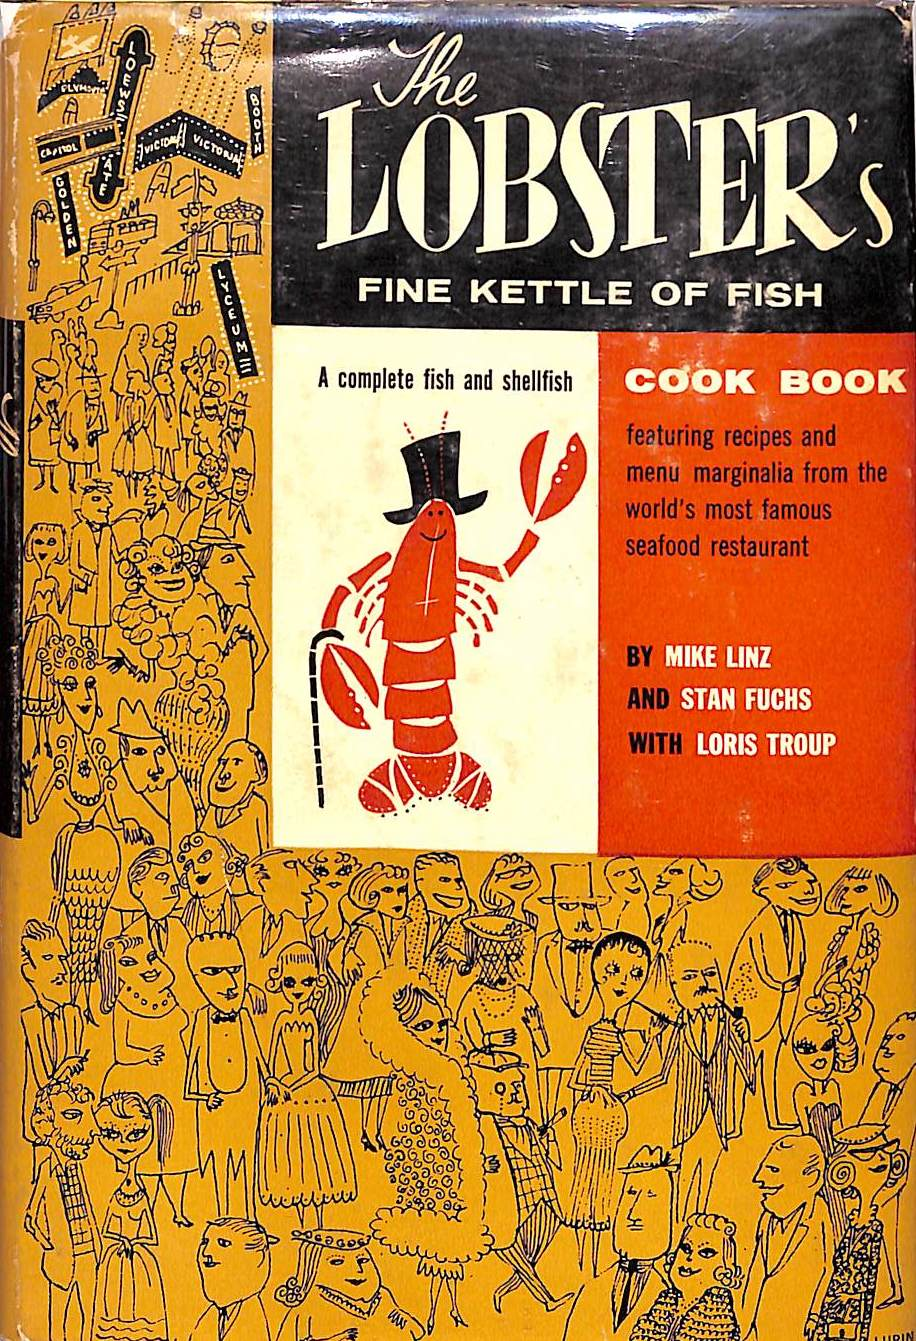 """The Lobster's Fine Kettle of Fish: A Complete Fish and Shellfish Cook Book"" 1958 LINZ, Mike and FUCHS, Stan"